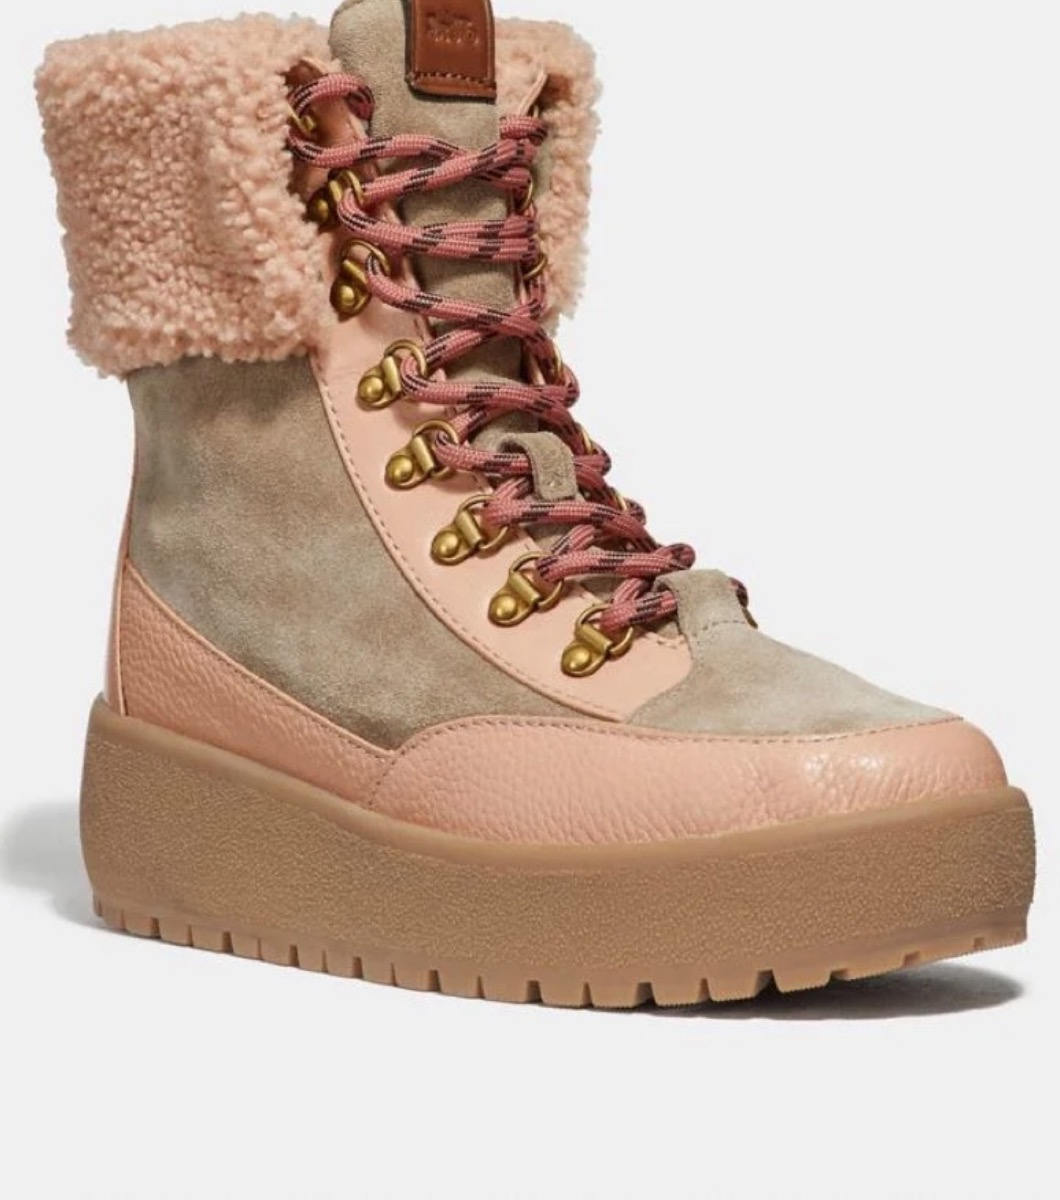 pink suede boots with shearling cuff